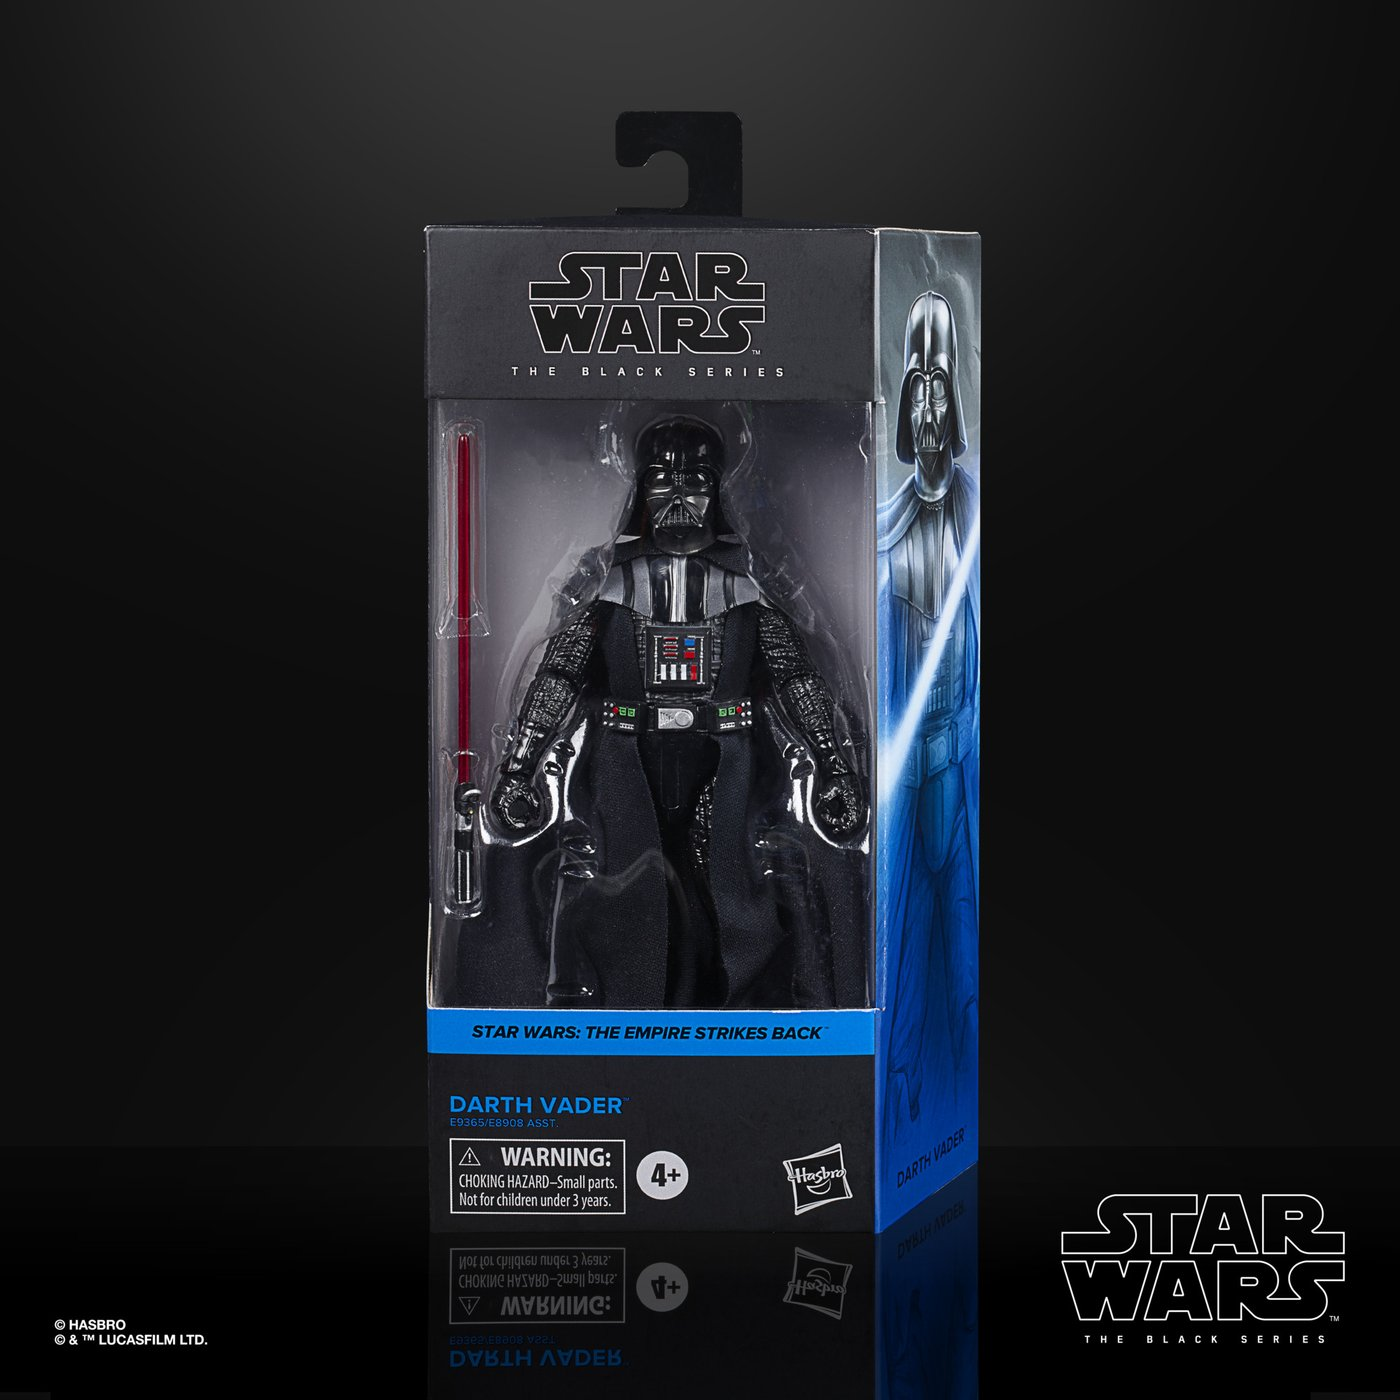 Star Wars The Black Series 6-Inch Action Figures Wave 1 E5 Darth Vader